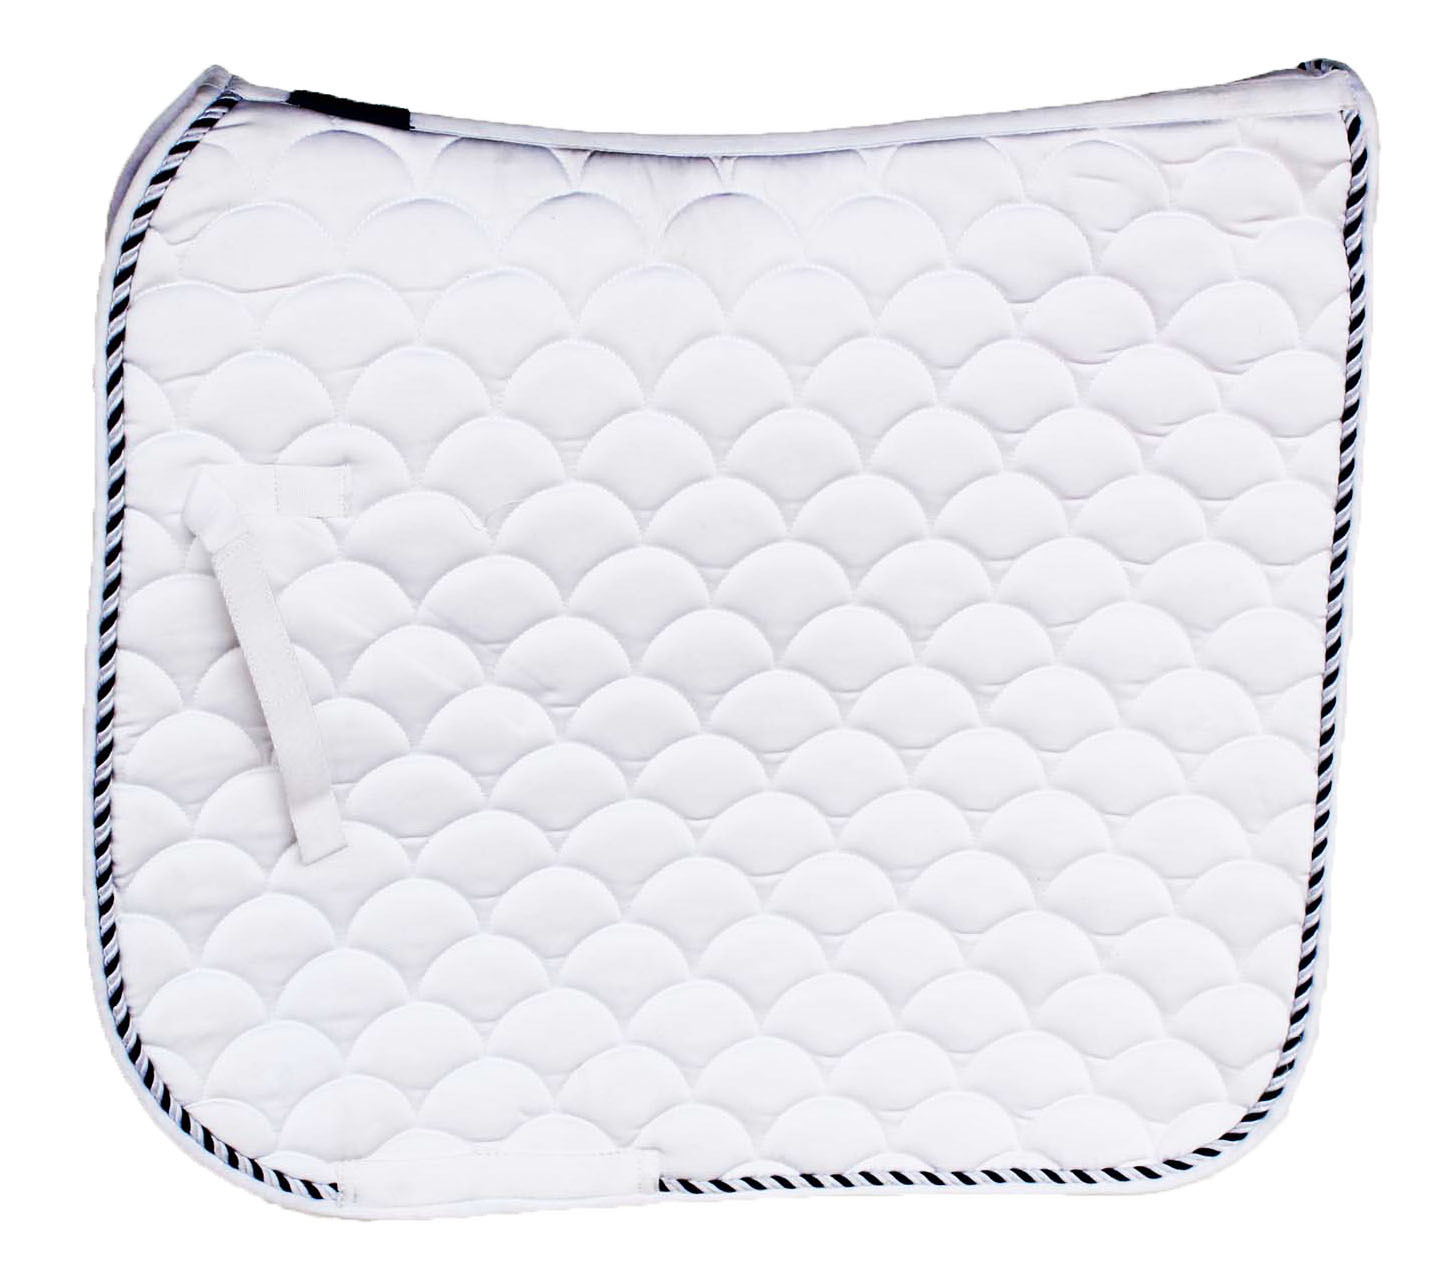 Horse-Quilted-ENGLISH-SADDLE-PAD-Trail-Dressage-7295 thumbnail 20